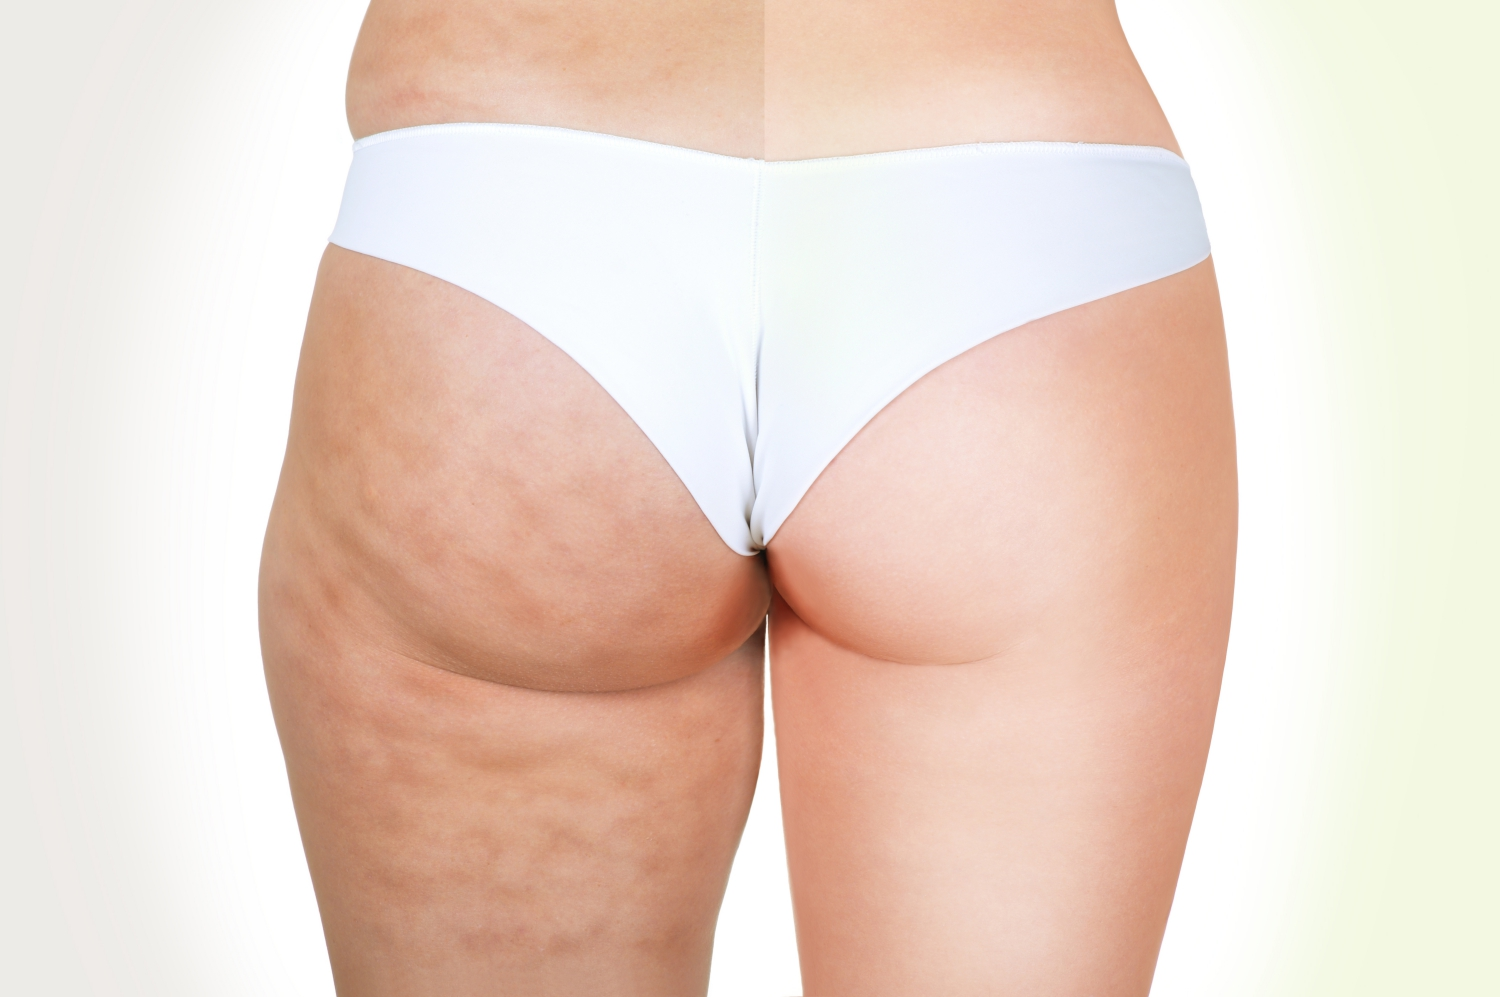 cellulite vs no cellulite - Is getting rid of cellulite as easy as foam rolling every day?